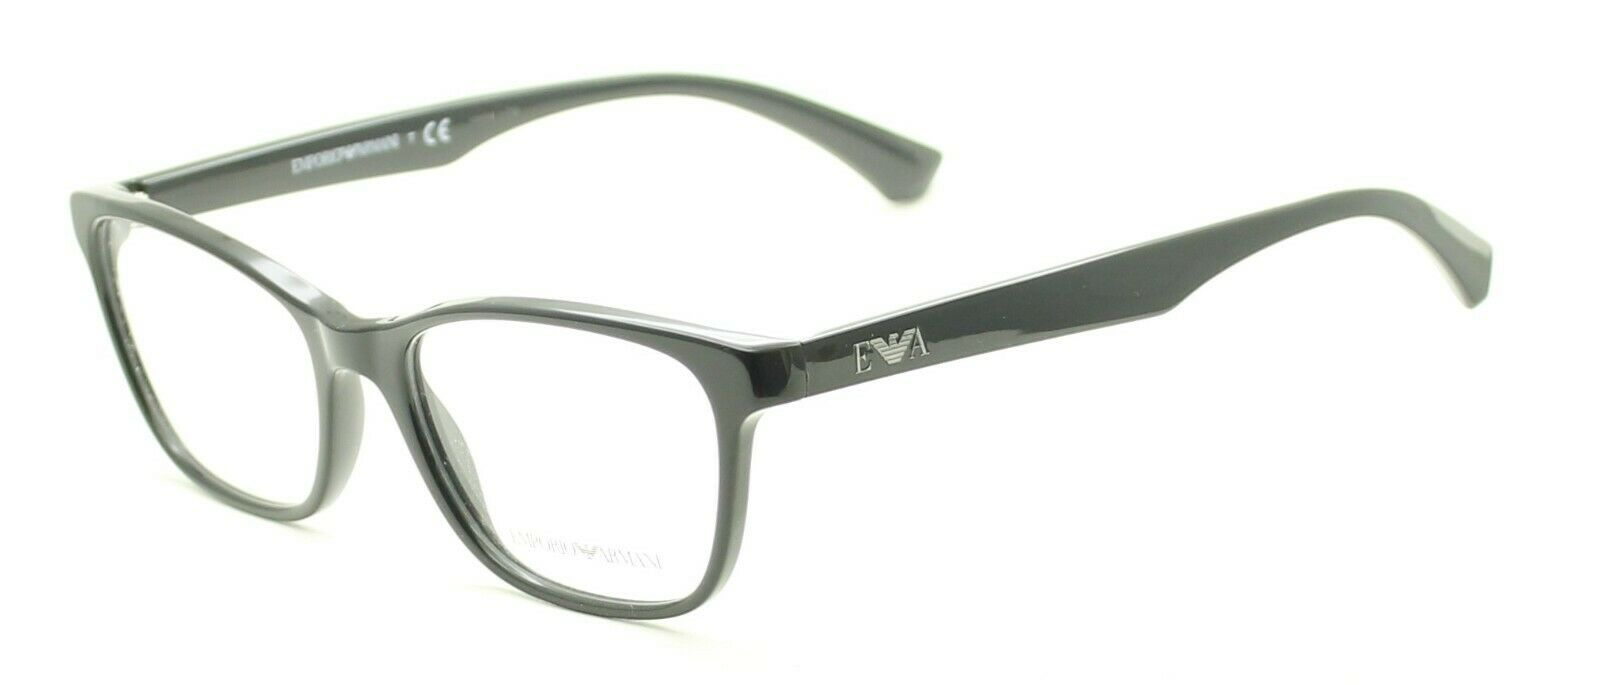 EMPORIO ARMANI EA 3157 5001 52mm Eyewear FRAMES RX Optical Glasses EyeglassesNew